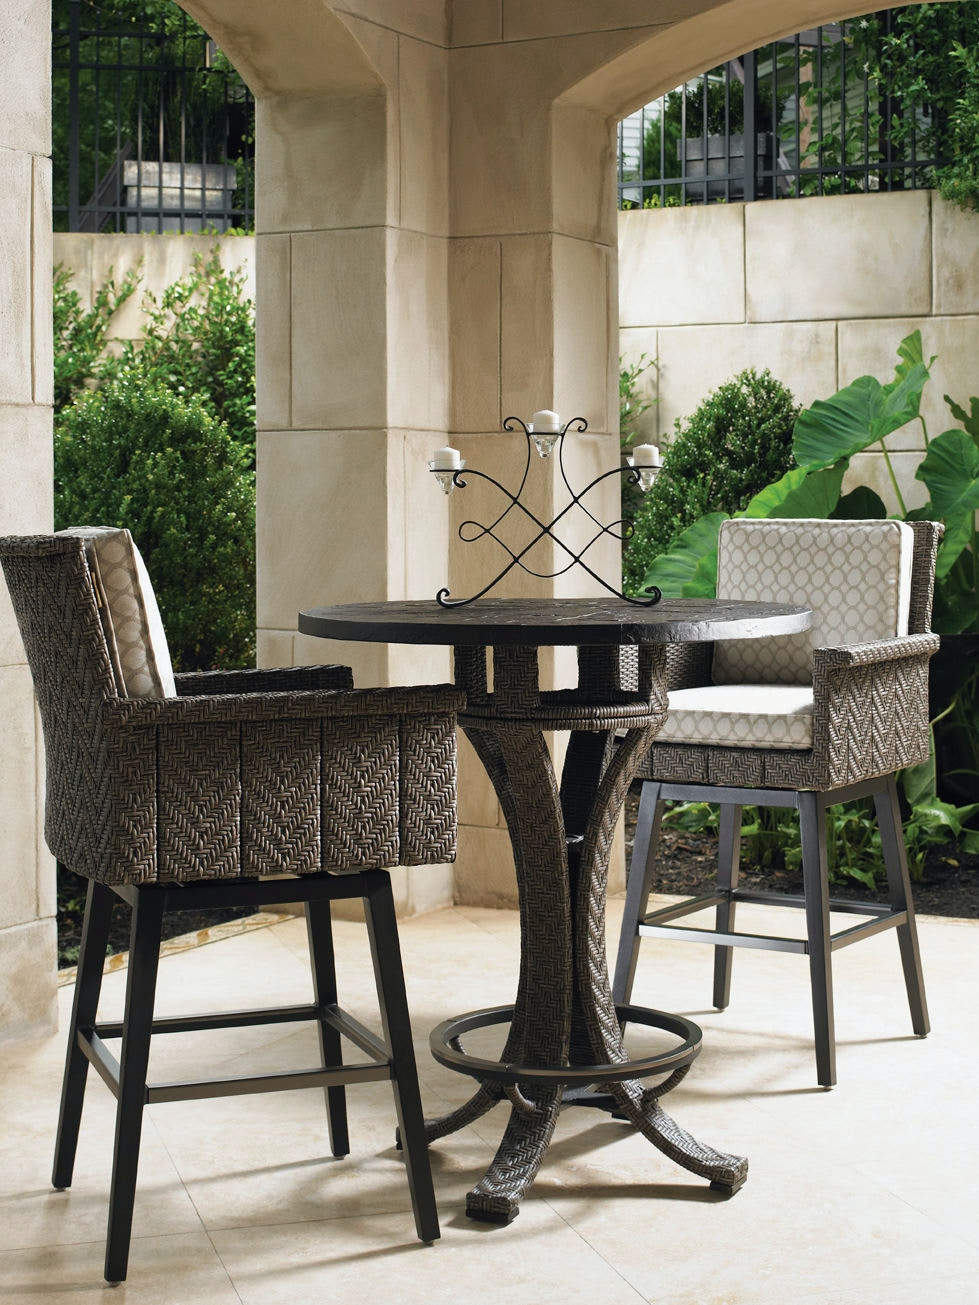 Tommy Bahama Outdoor Living HighLow Bistro Table Base  : 3230873bbhighrs from www.fhcasual.com size 1024 x 768 jpeg 82kB